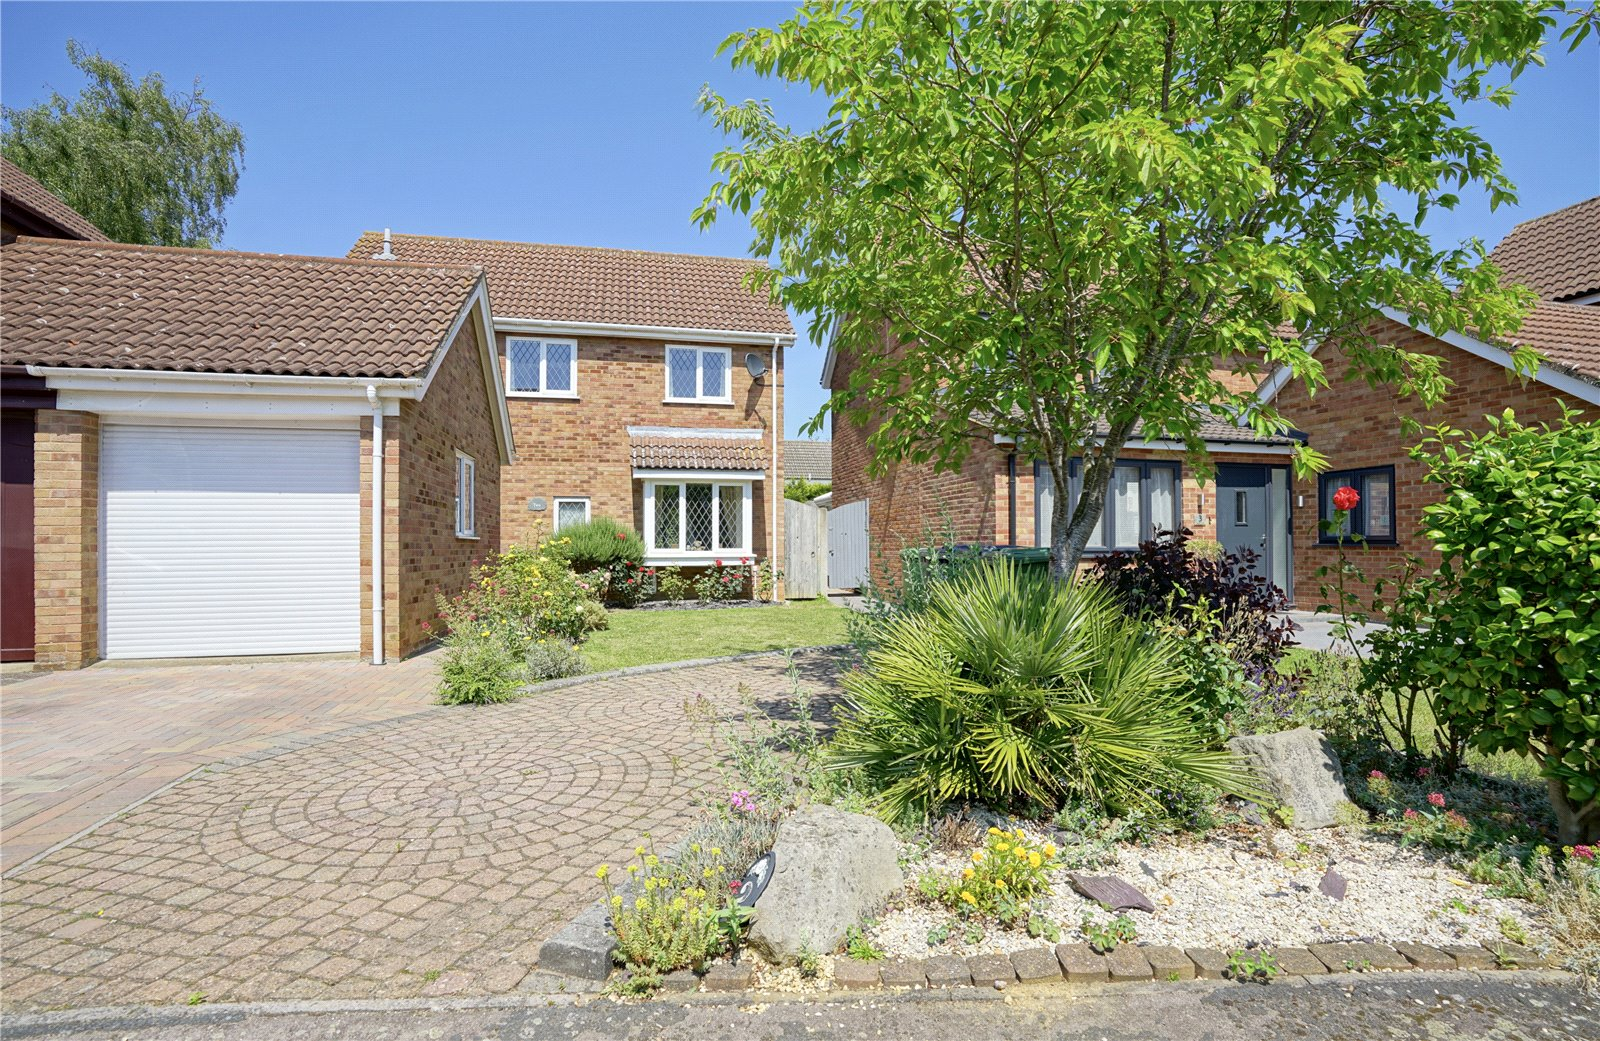 3 bed house for sale in Eaton Ford, Sundew Close, PE19 7GN 0